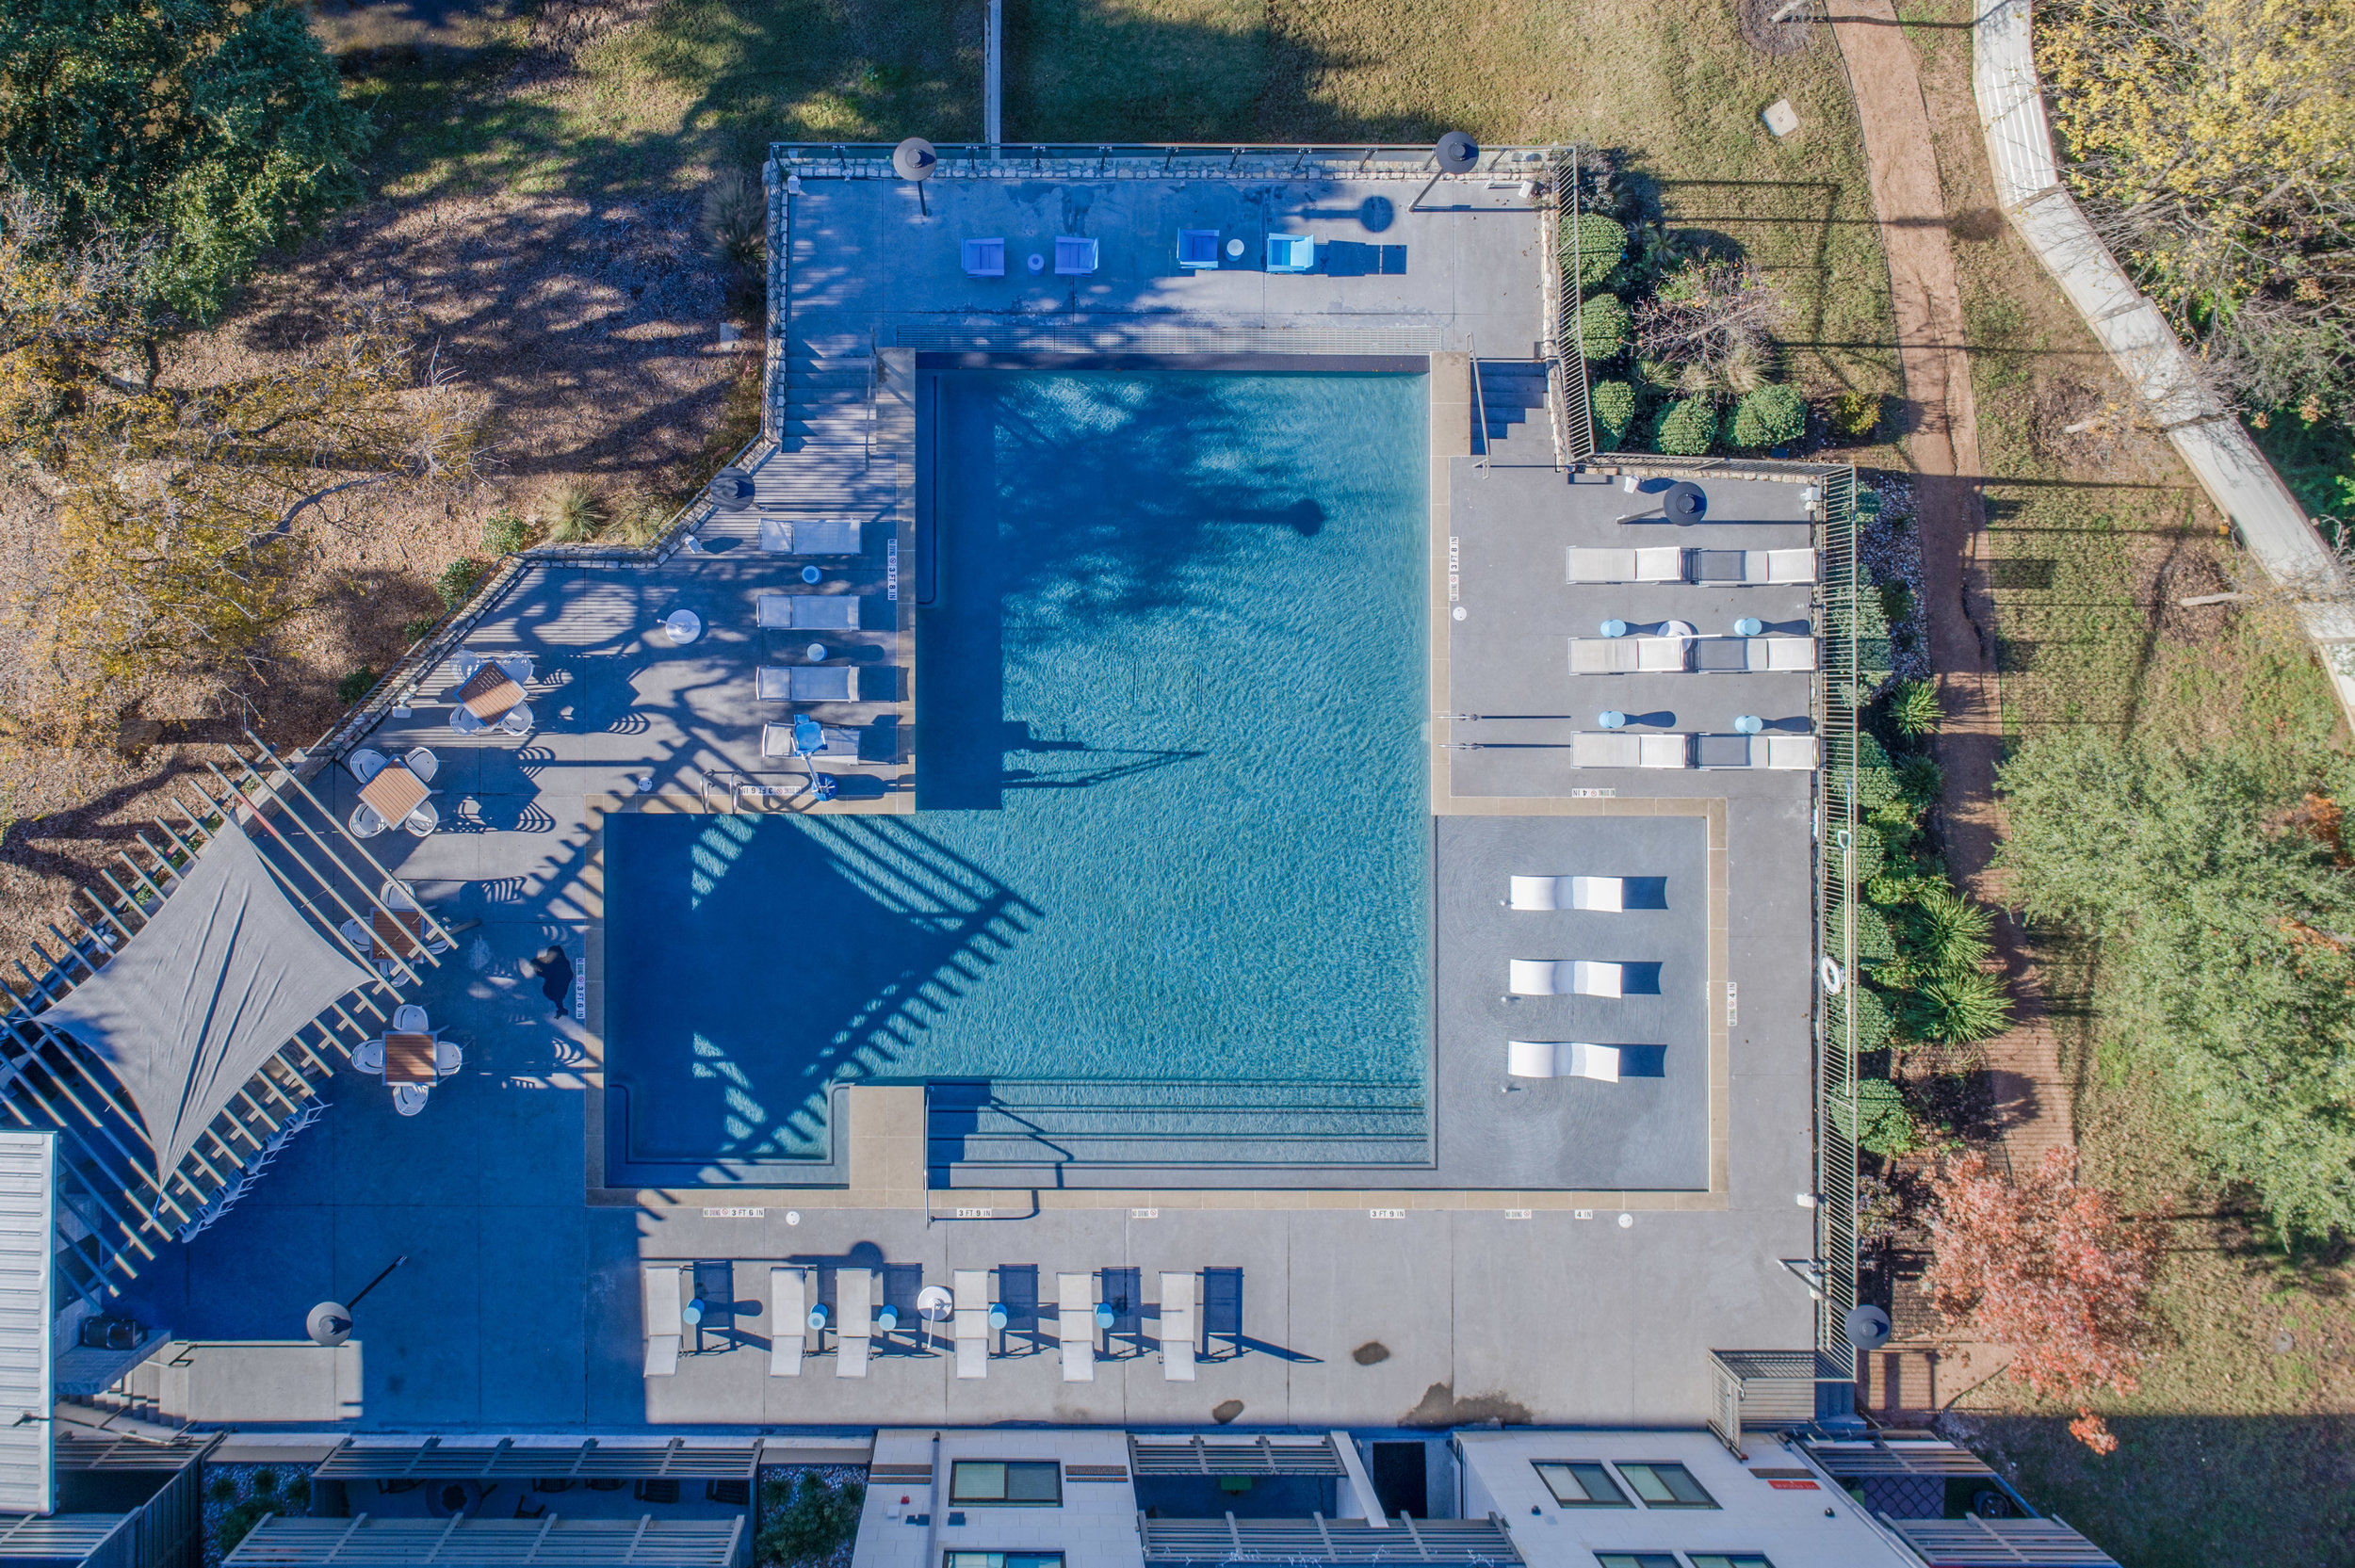 GreenView - Austin, Texas (Pool view from above)